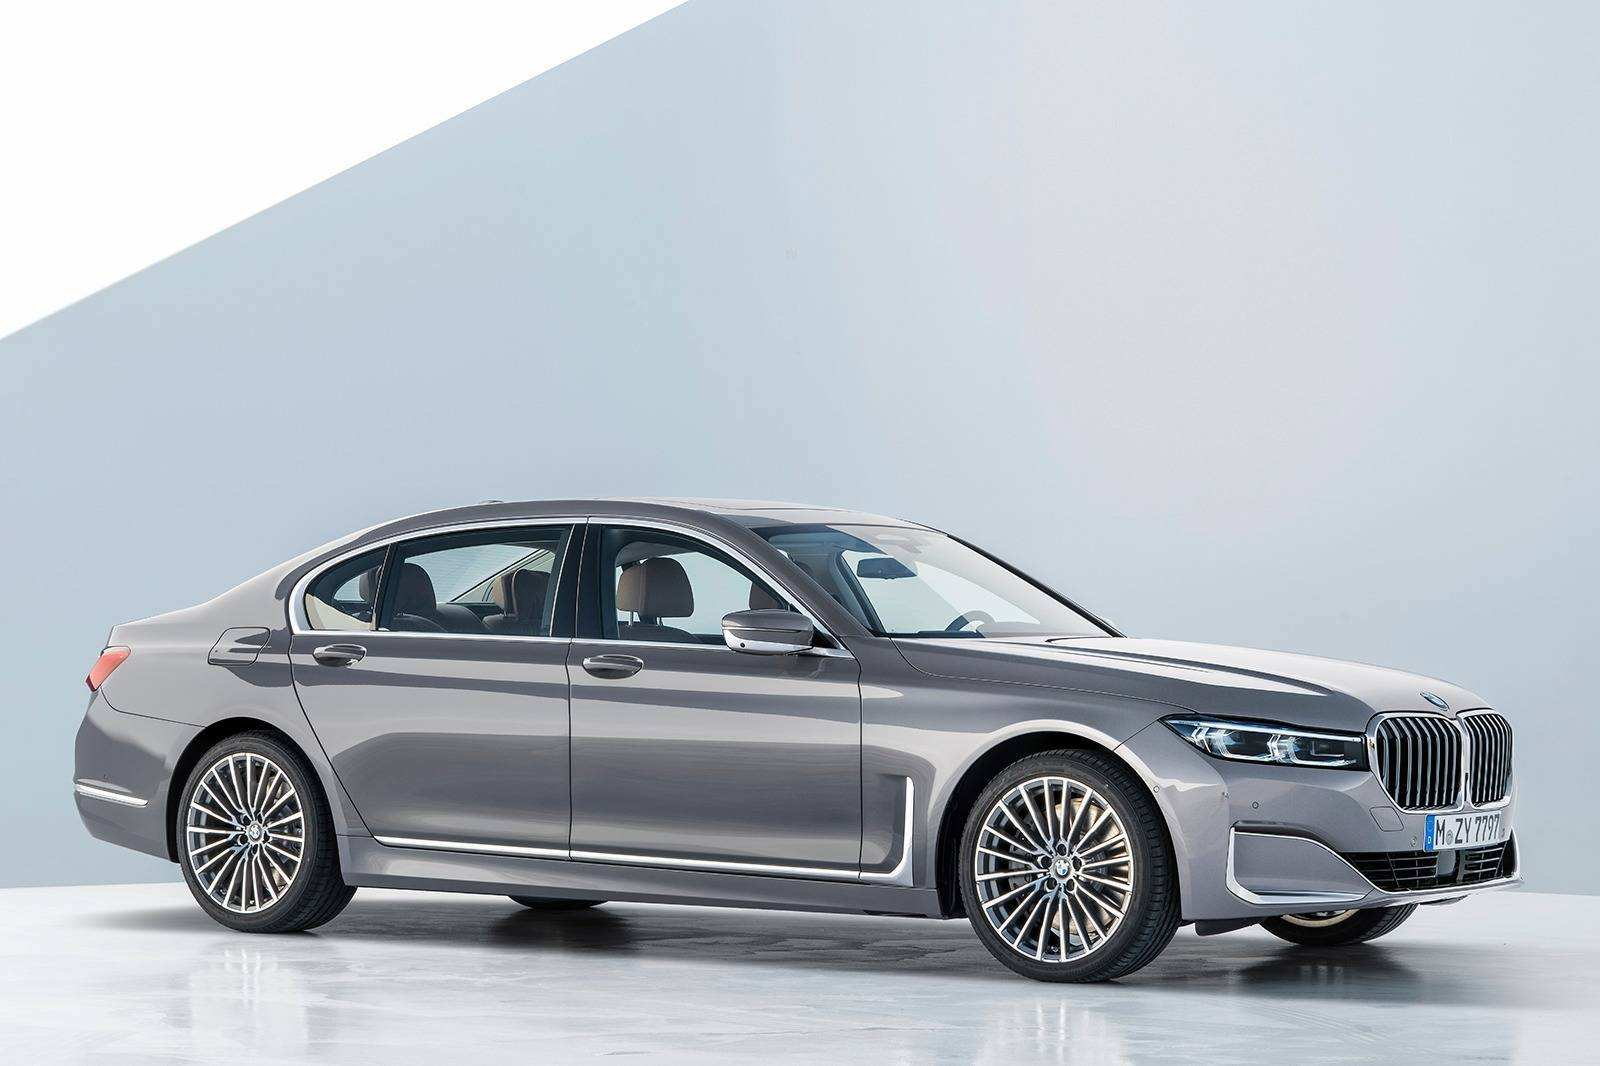 60 All New BMW New Models 2020 Specs And Review